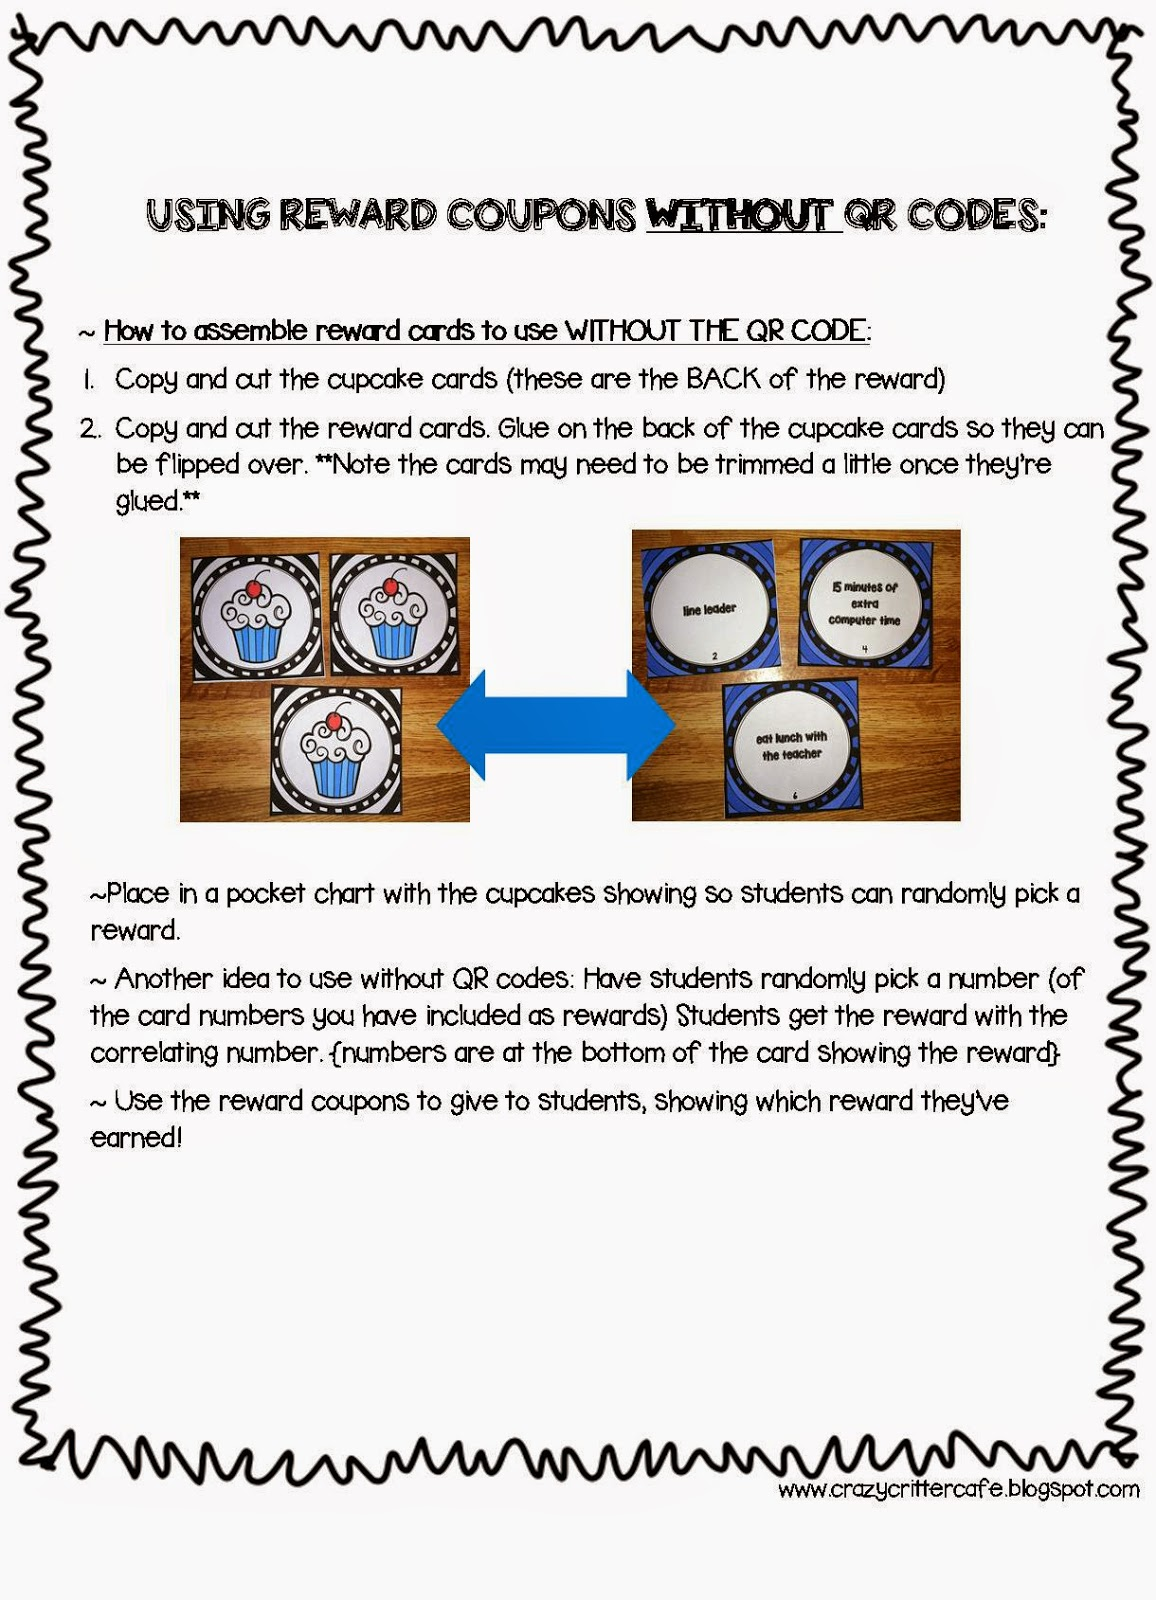 http://www.teacherspayteachers.com/Product/69-Interactive-Scan-Earn-QR-Code-Reward-CouponsUse-with-or-without-QR-Code-1329830